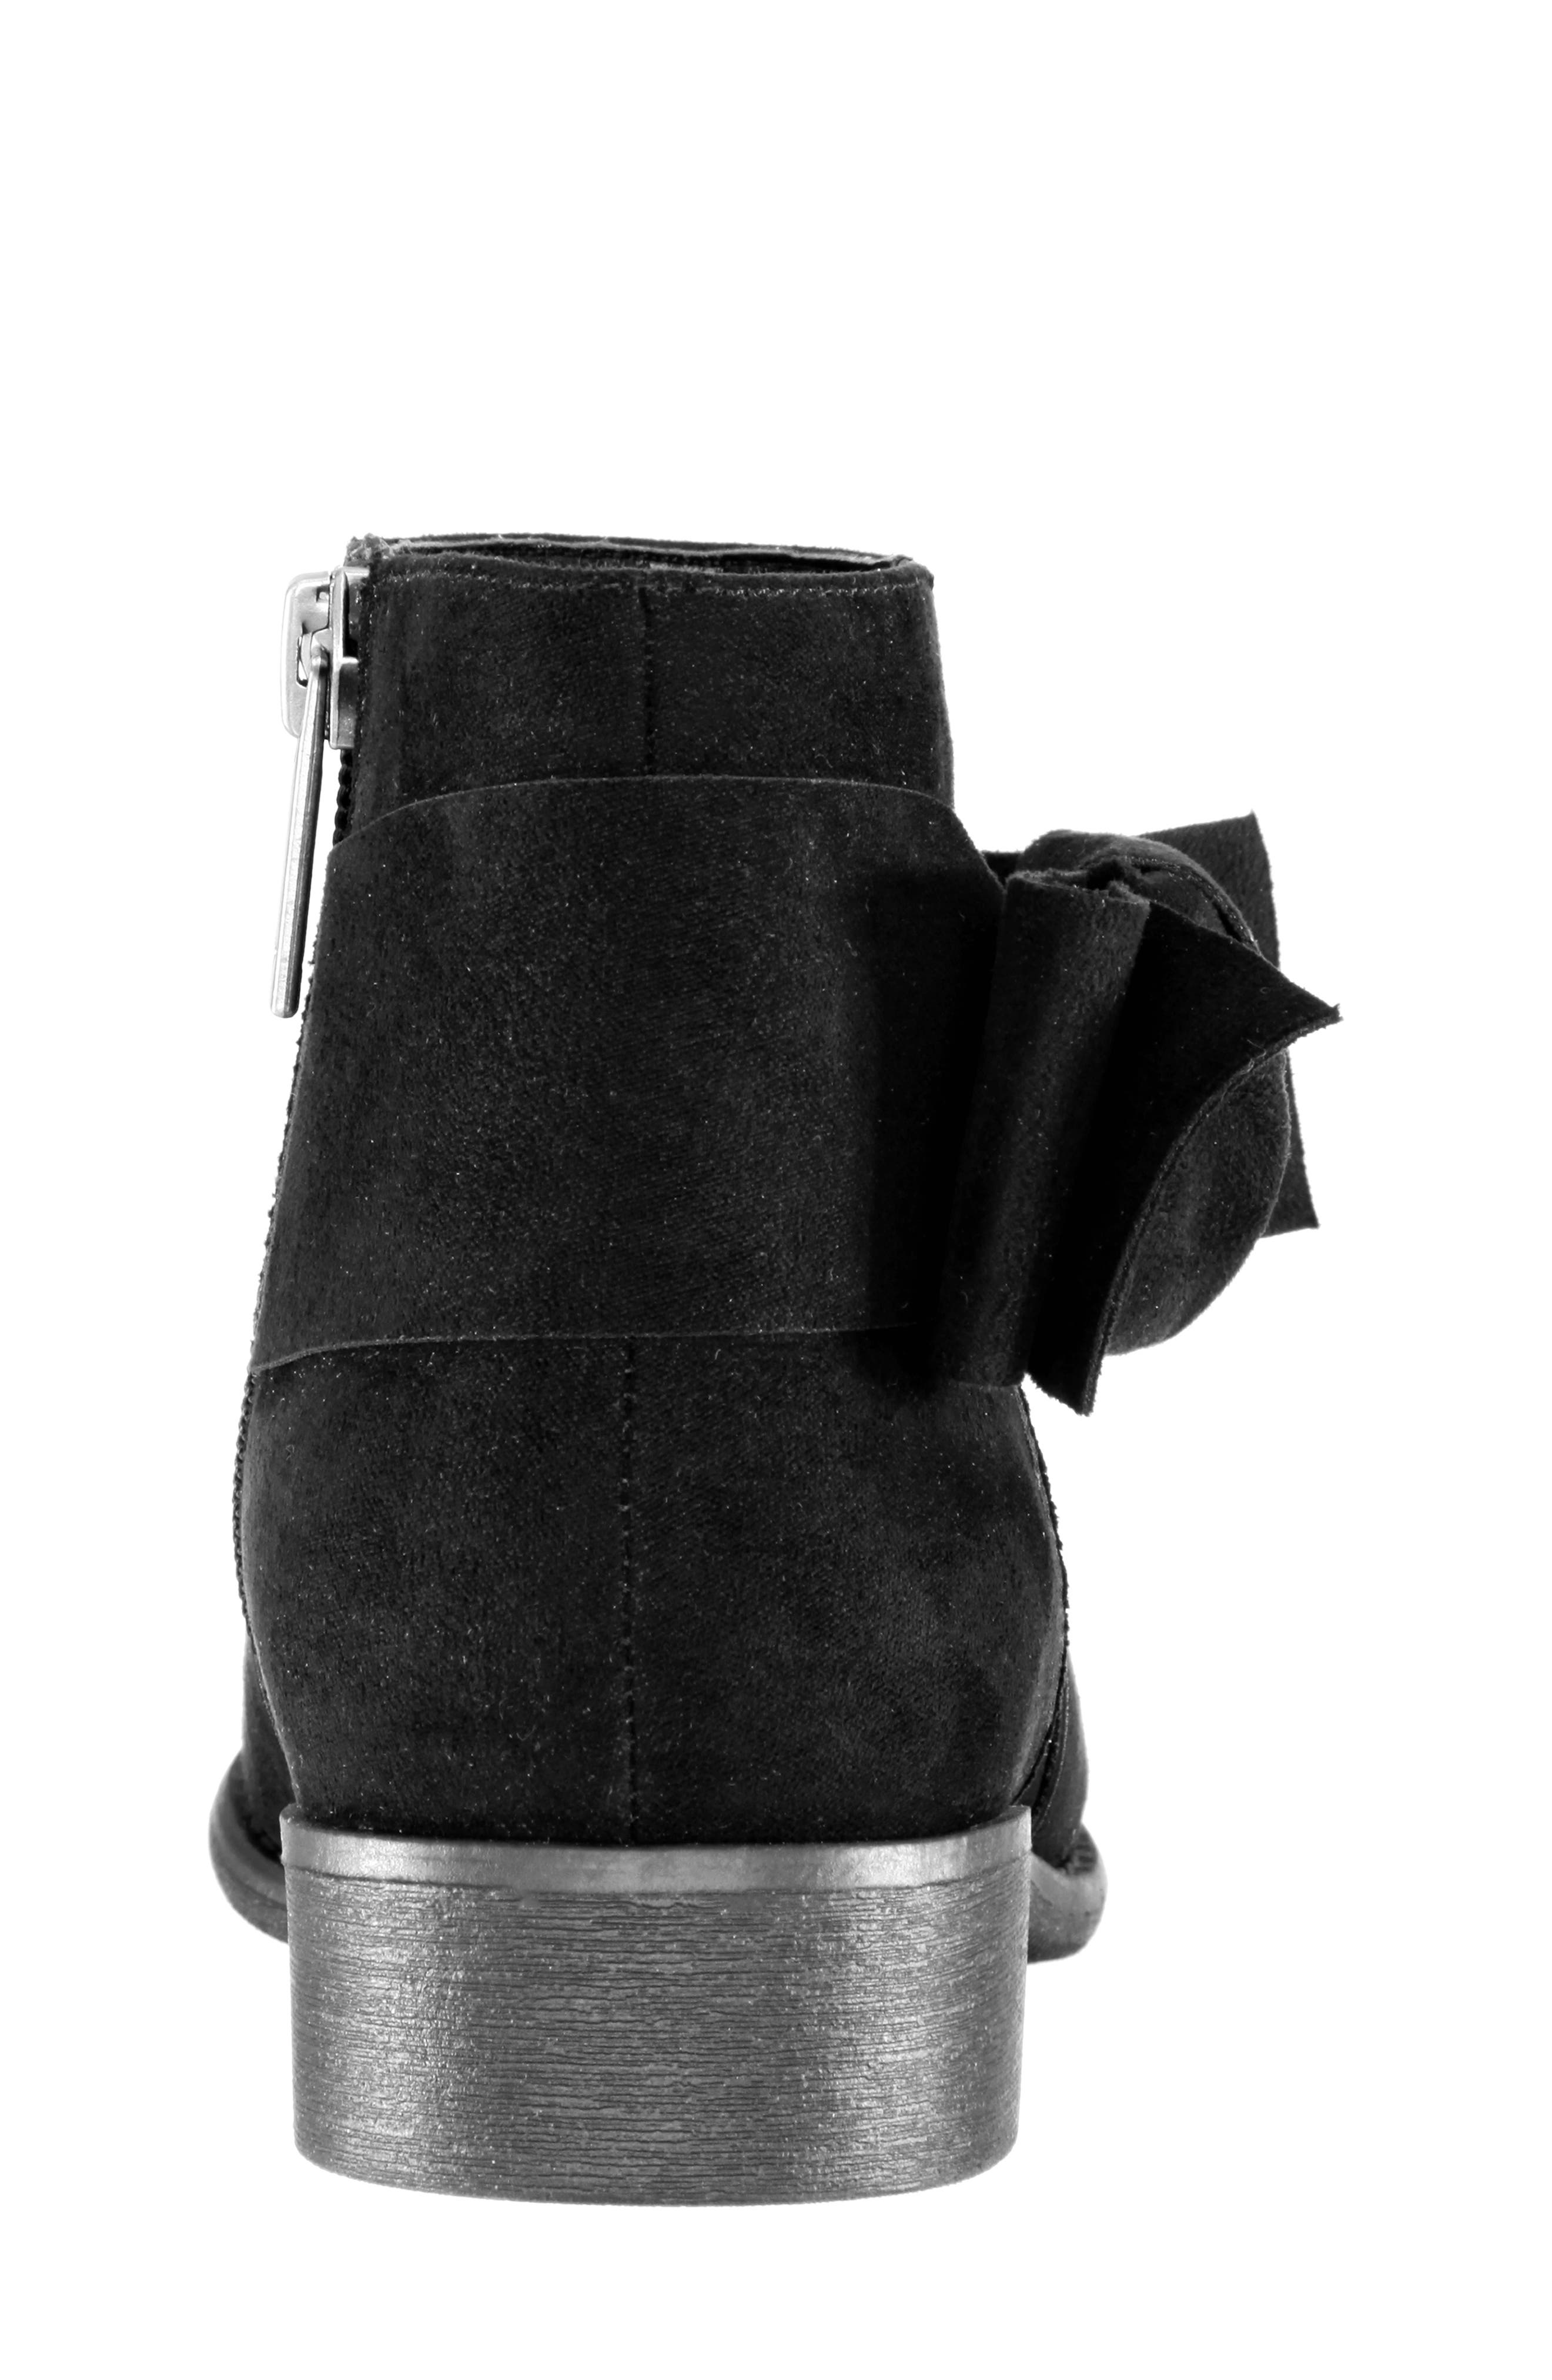 Dollee Bootie,                             Alternate thumbnail 7, color,                             BLACK MICRO SUEDE